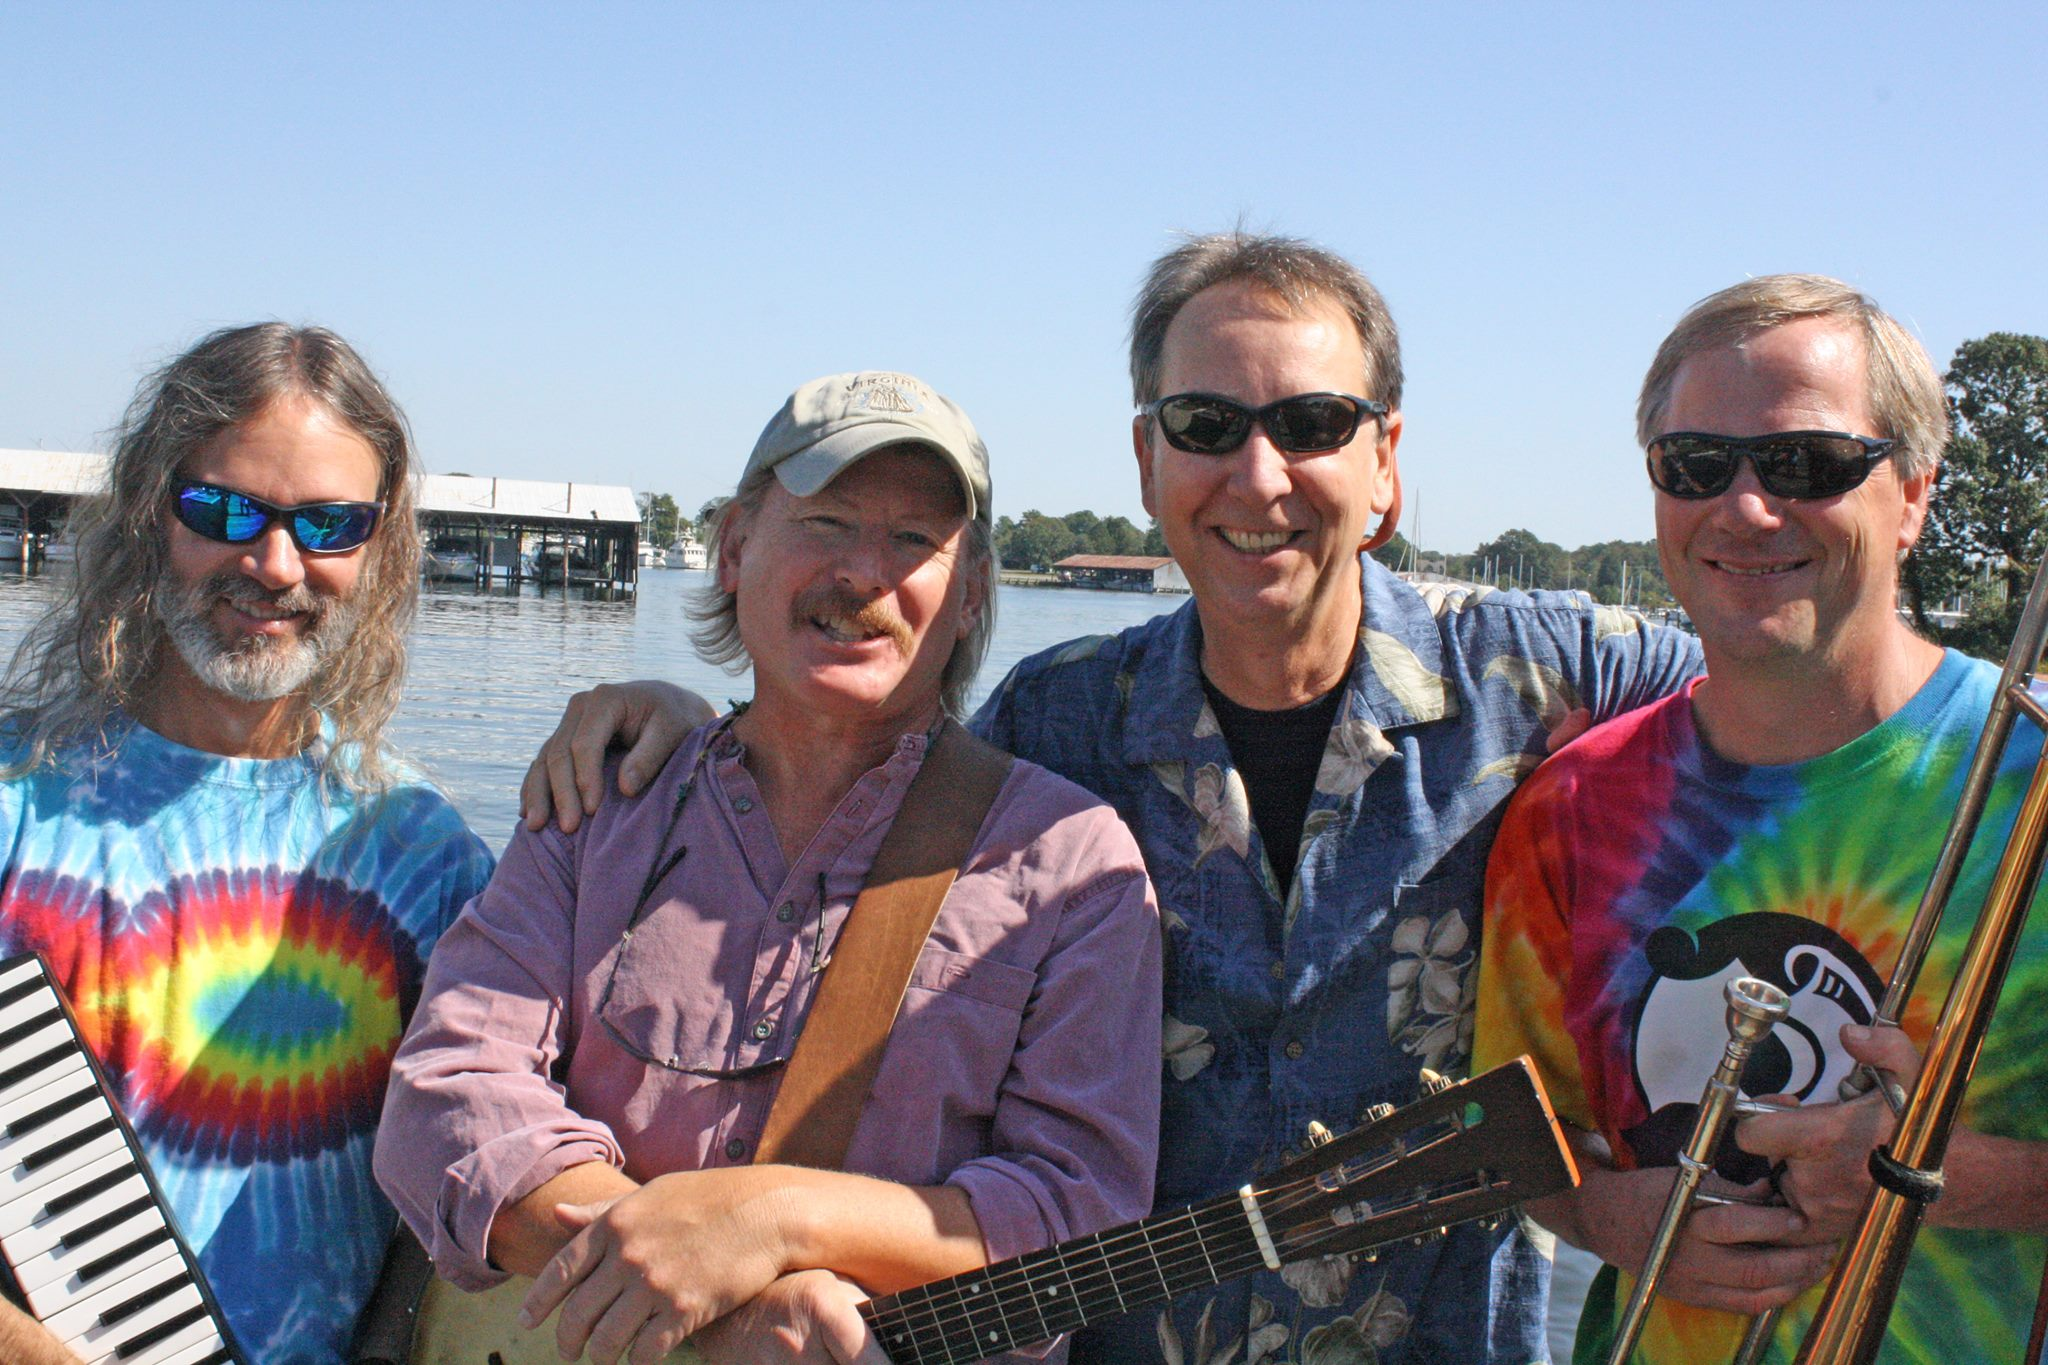 Mainstay at The Gqrfield Presents the Eastport Oyster Boys